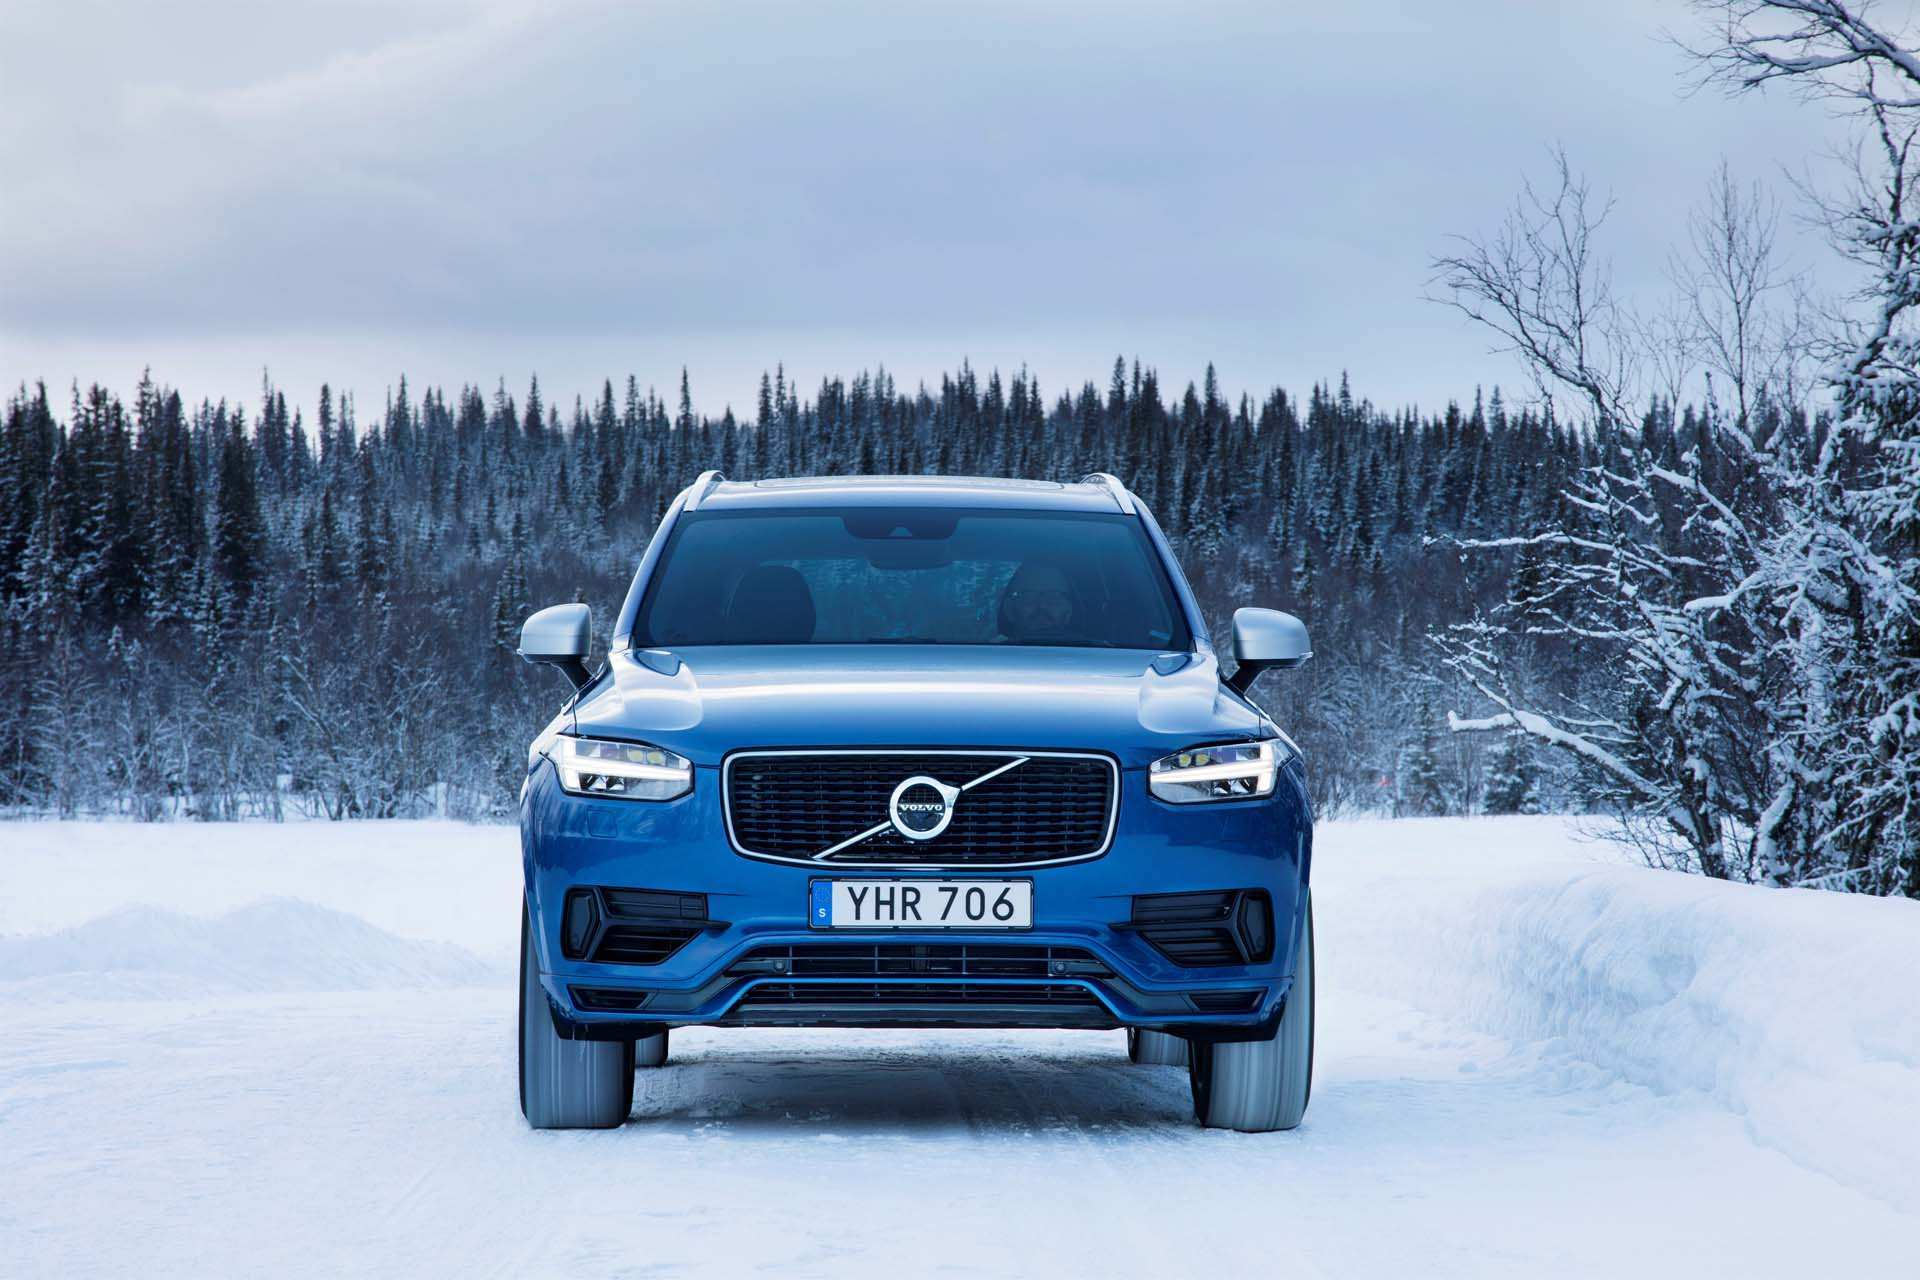 46 All New When Is The 2020 Volvo Xc90 Coming Out History